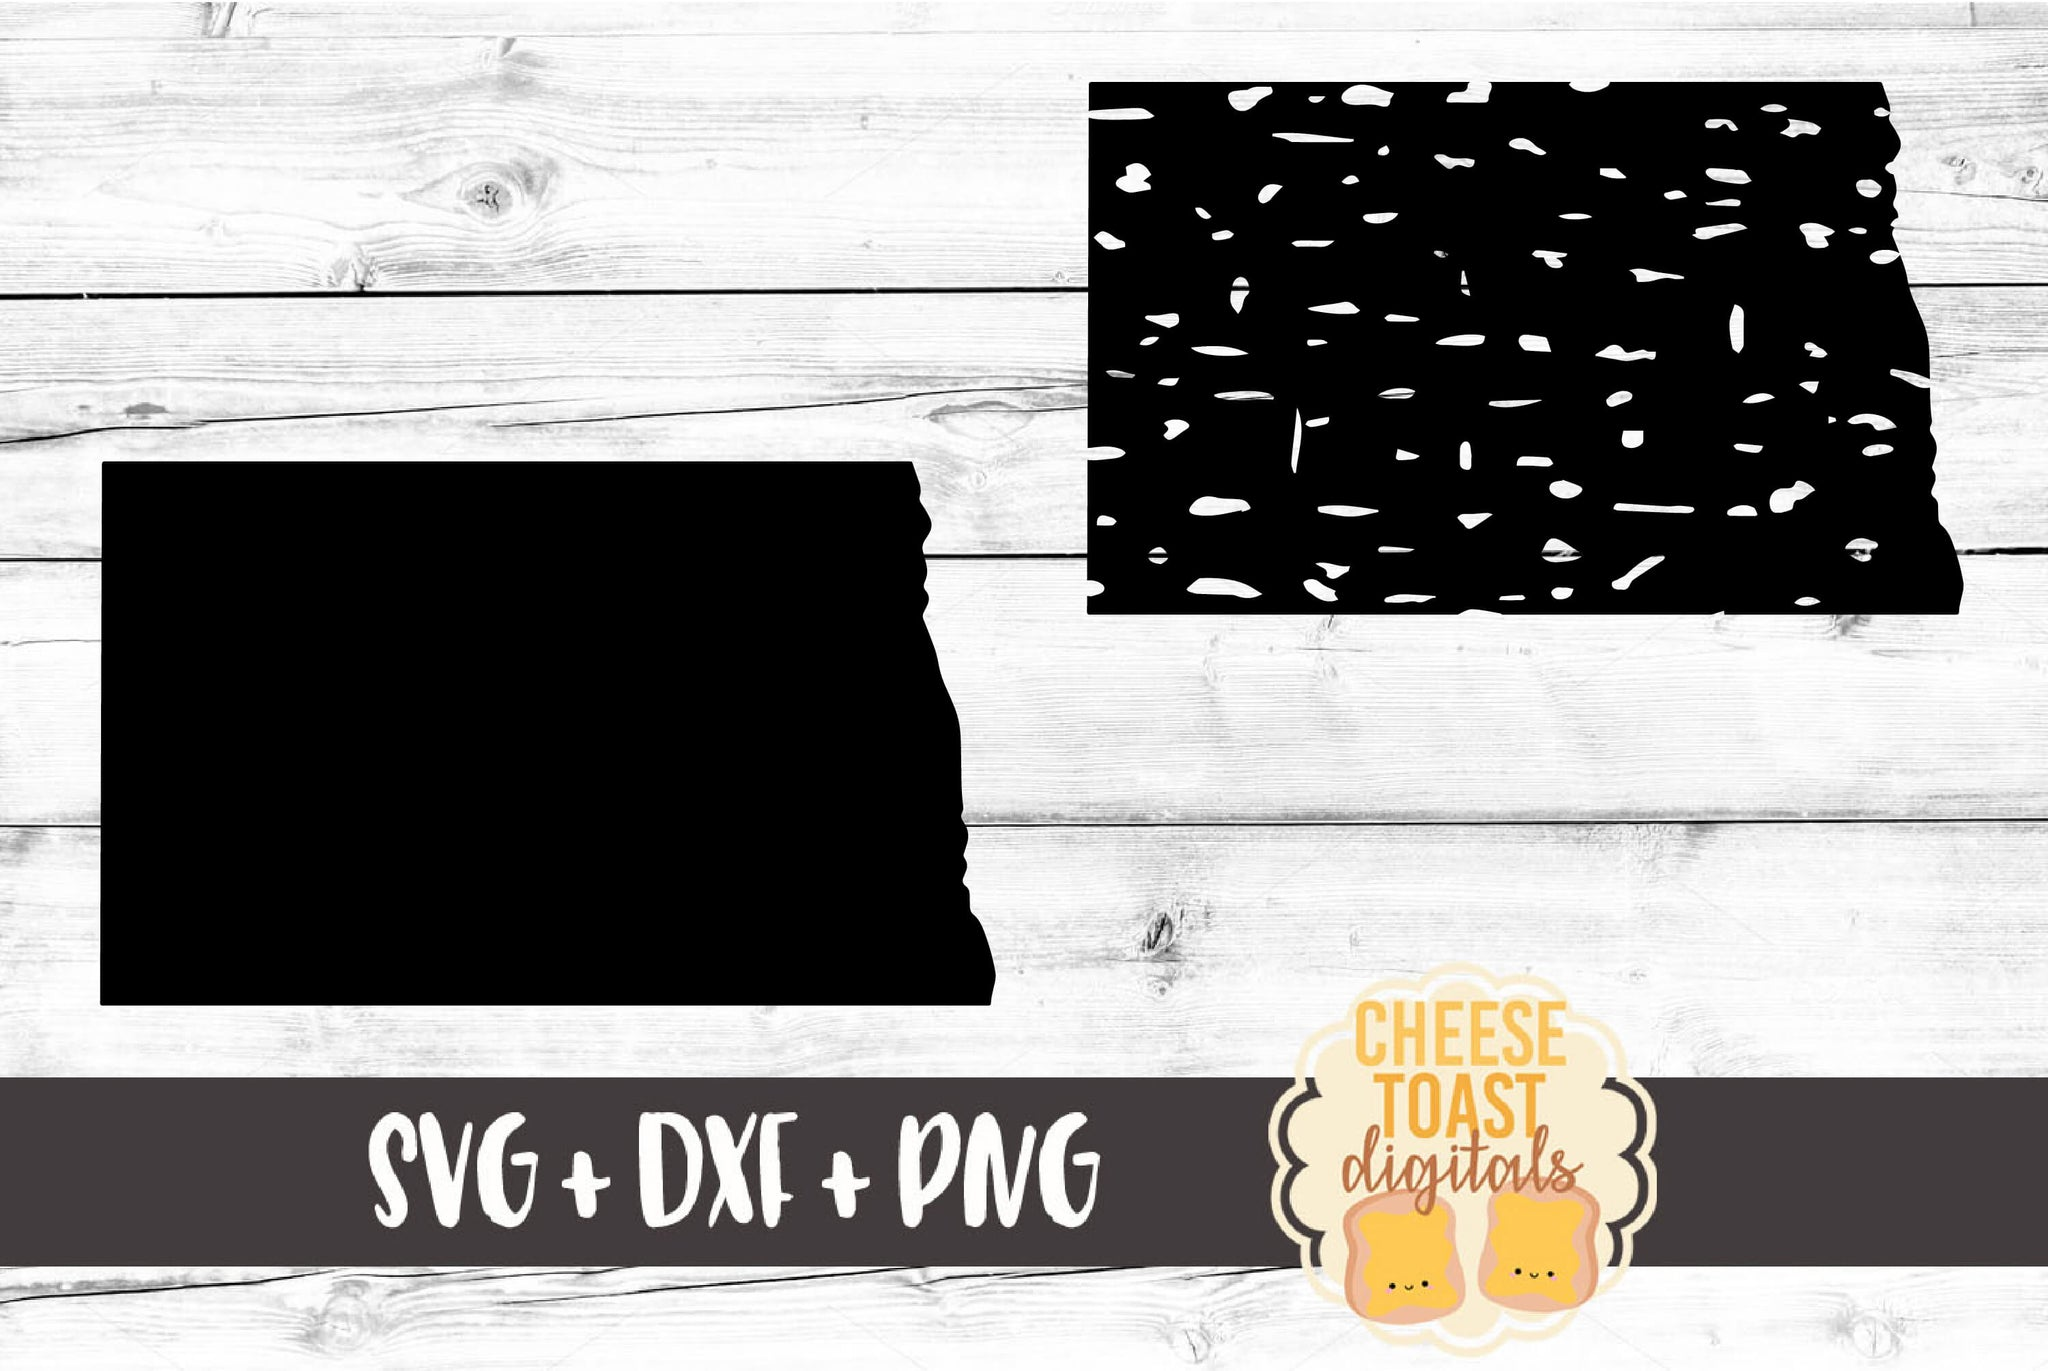 North Dakota - Grunge and Solid - SVG, PNG, DXF